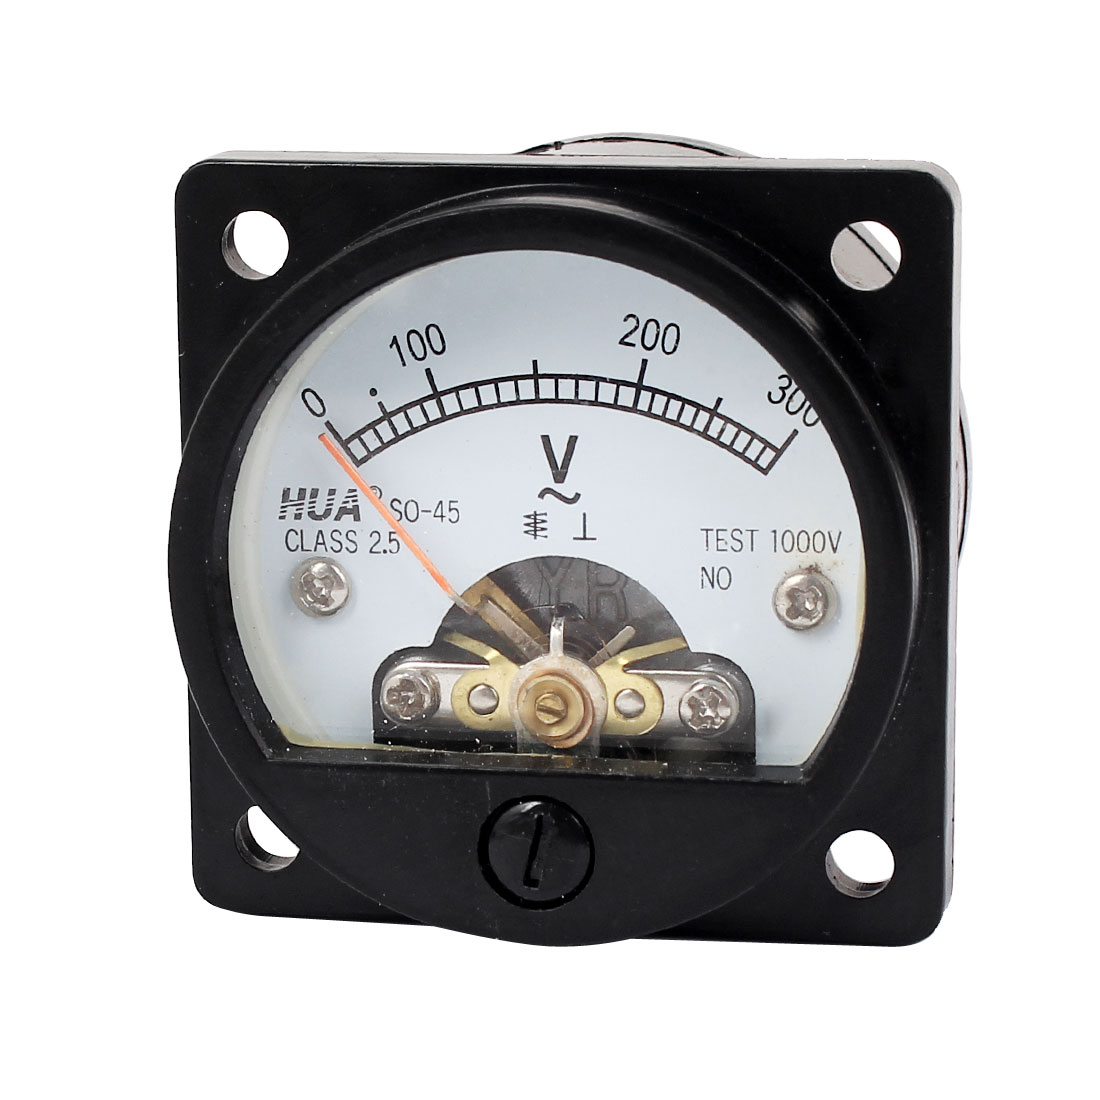 AC 0-300V Fine Tuning Dial Panel Analog Voltage Meter Voltmeter Black Class 2.5